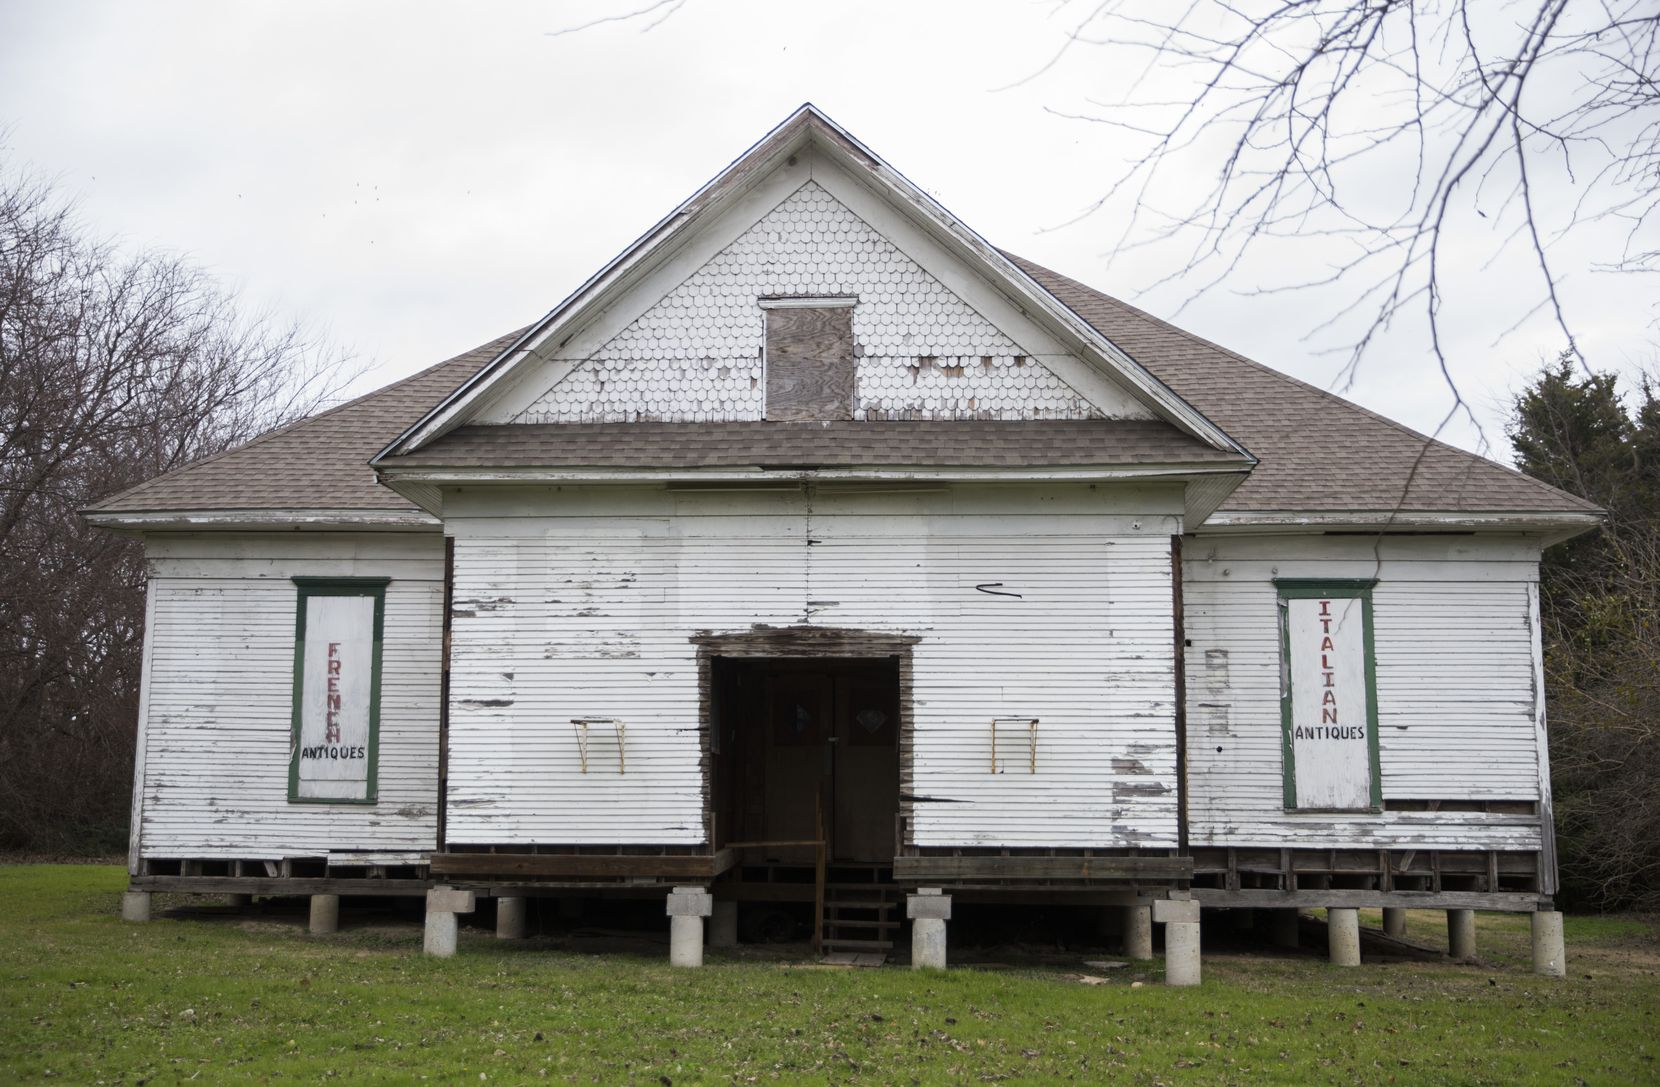 New Hope Church, built in 1909, has been moved to the Opal Lawrence Historical Park for restoration and could open to visitors in two to three years.